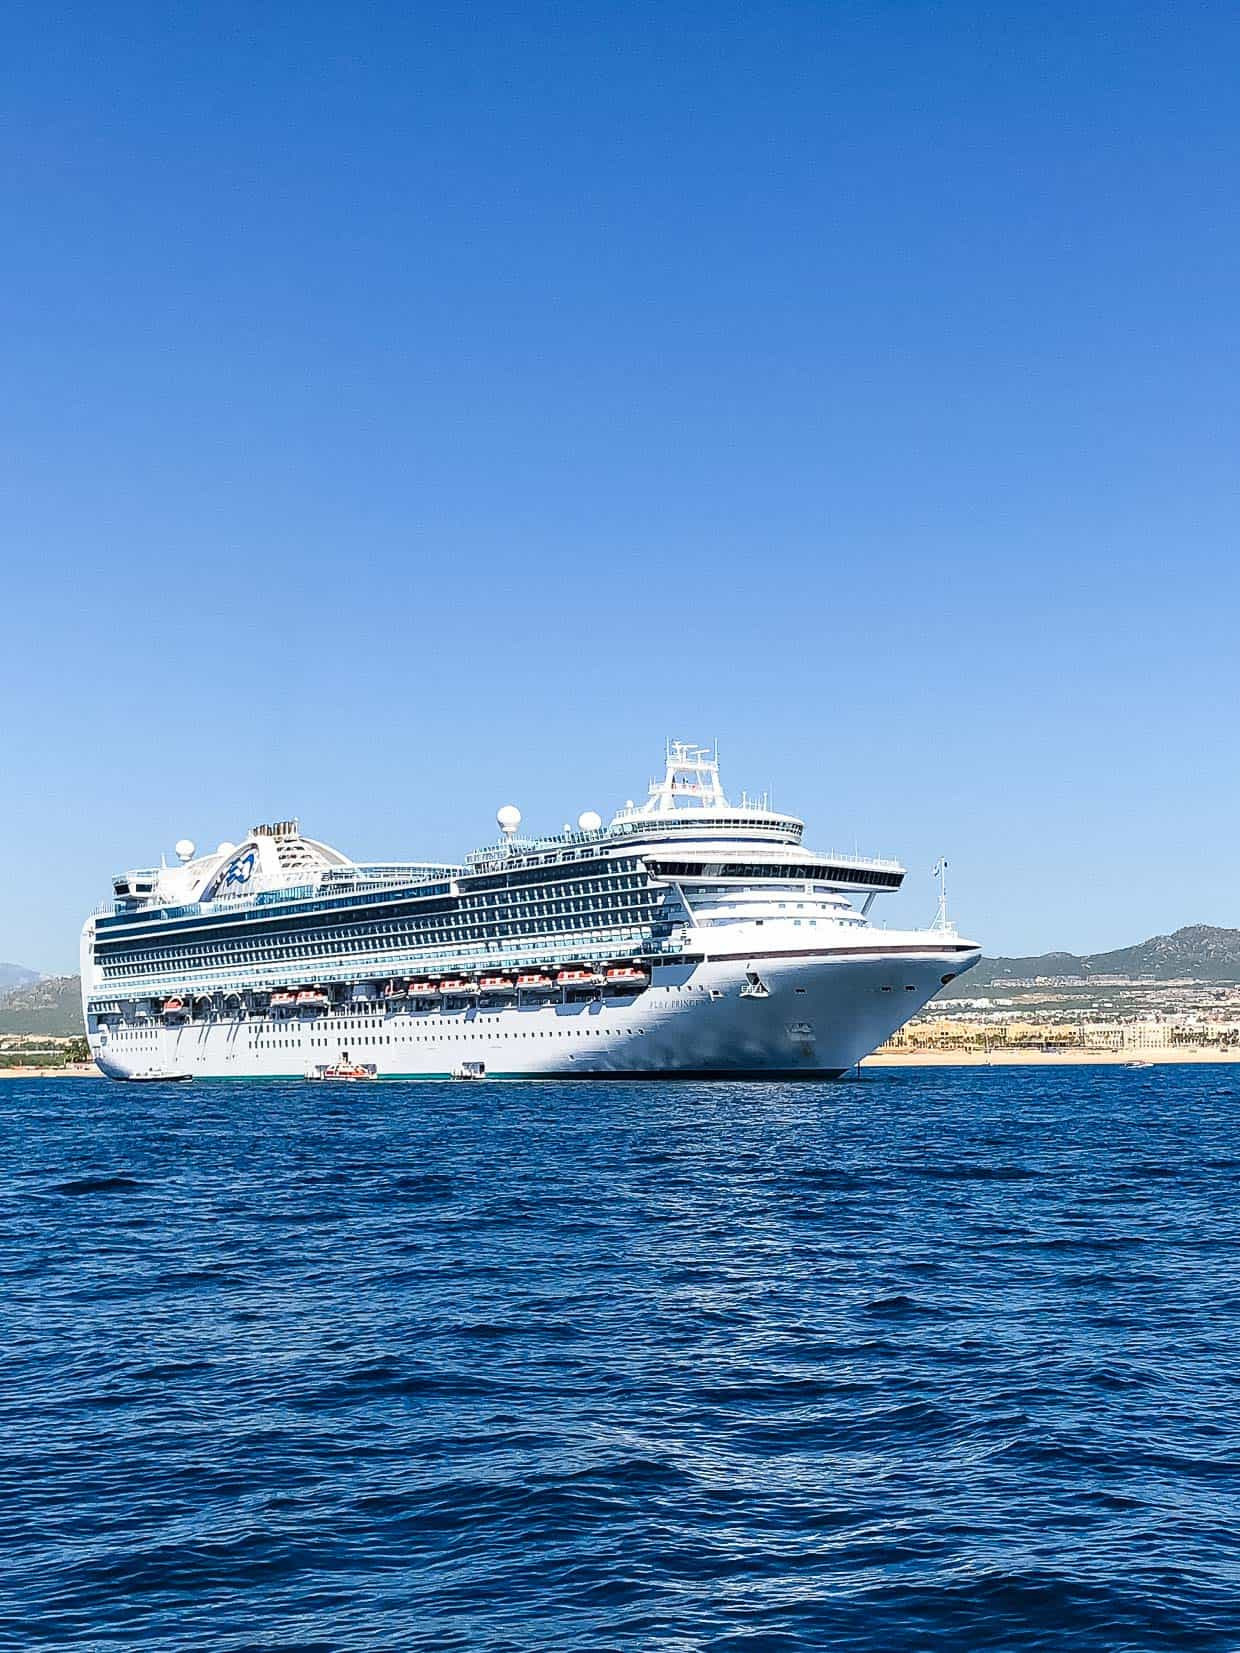 The Ruby Princess at port. #ad Find out why we loved cruising the Mexican Riviera with Princess Cruises!